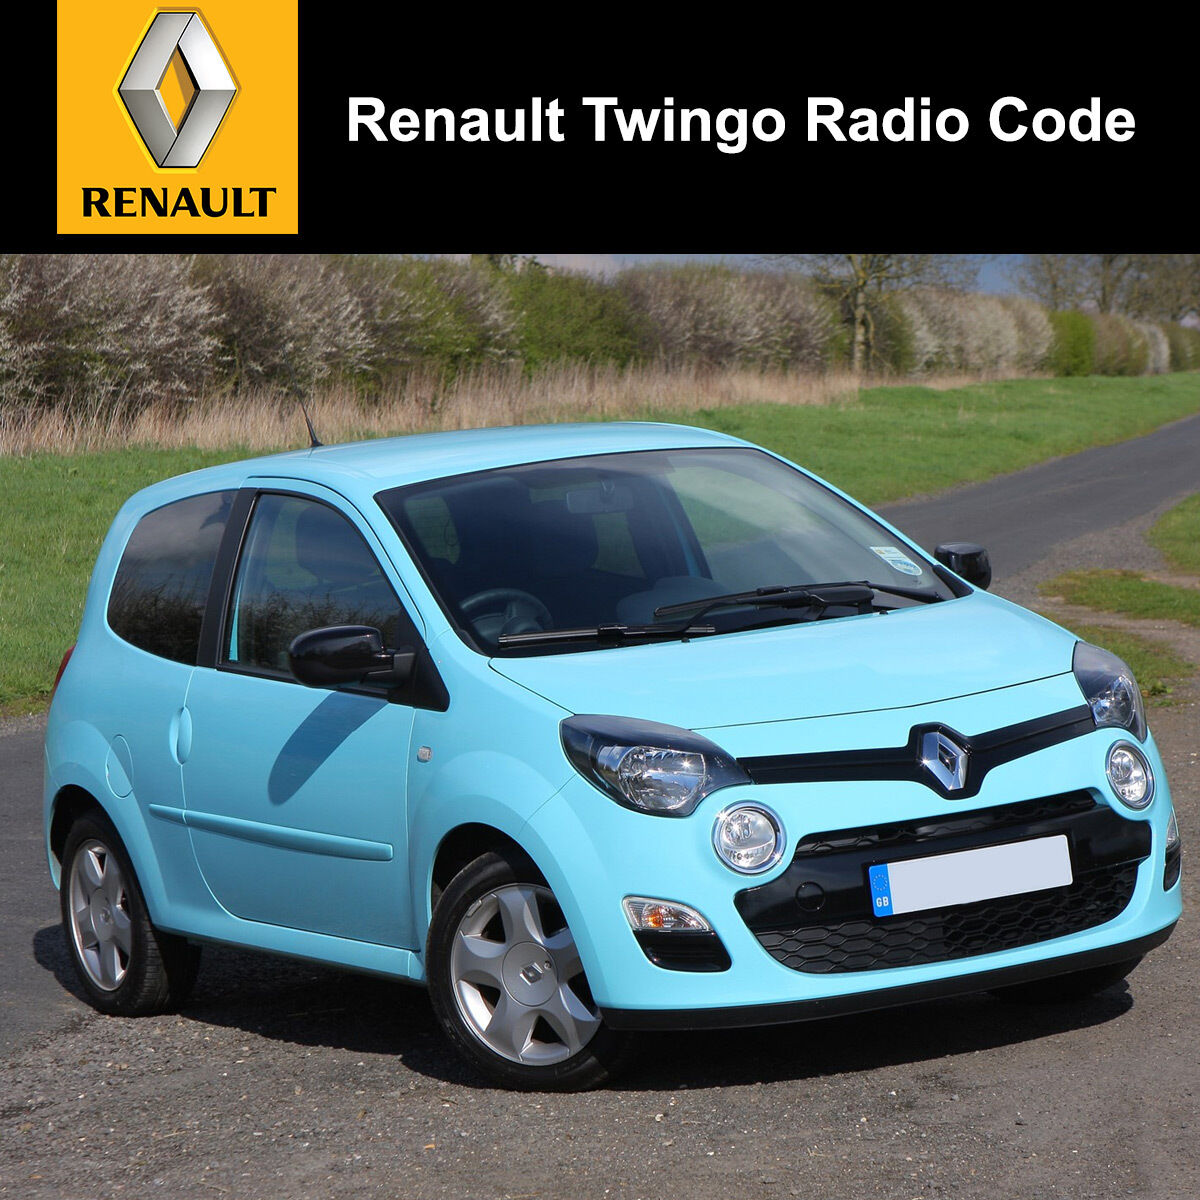 Details about Renault Twingo Radio Code Stereo Decode Car Unlock Fast  Service UK All Vehicles